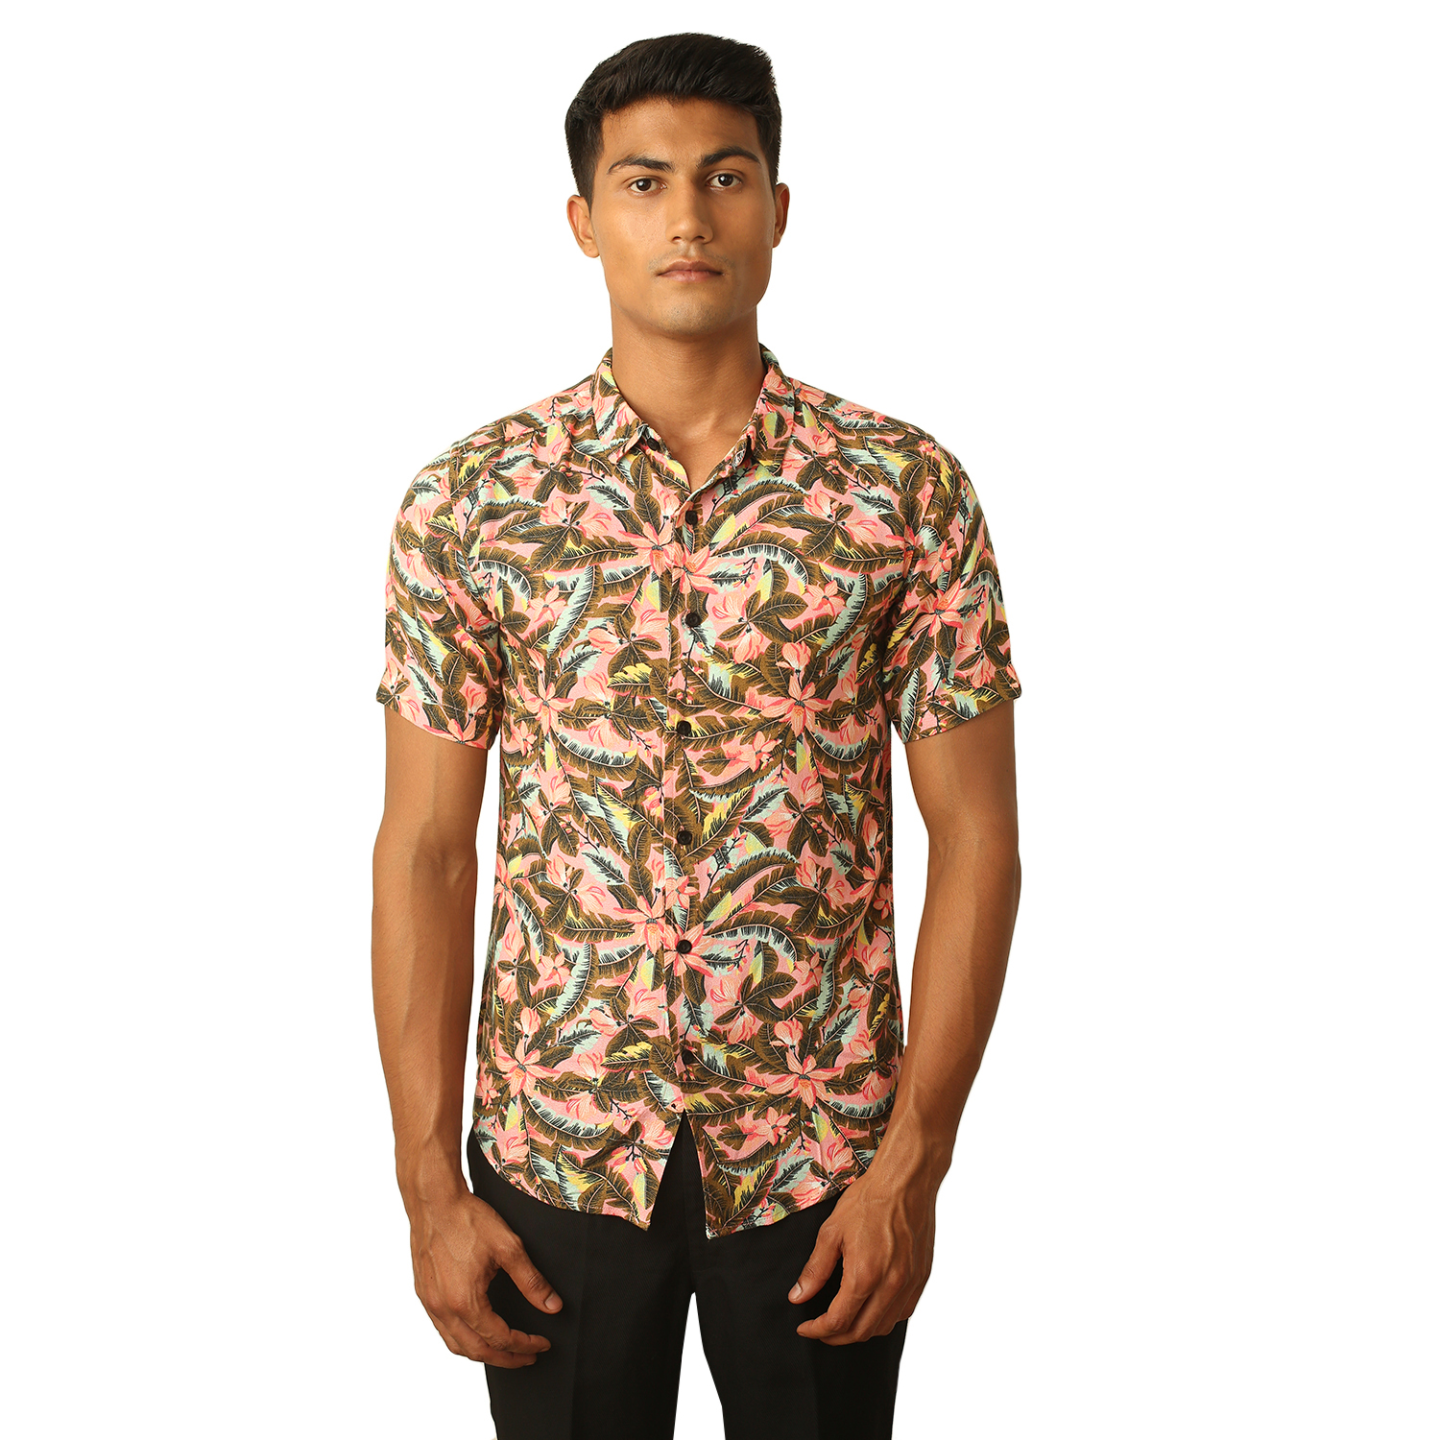 Destello Miami Beach Print Shirt